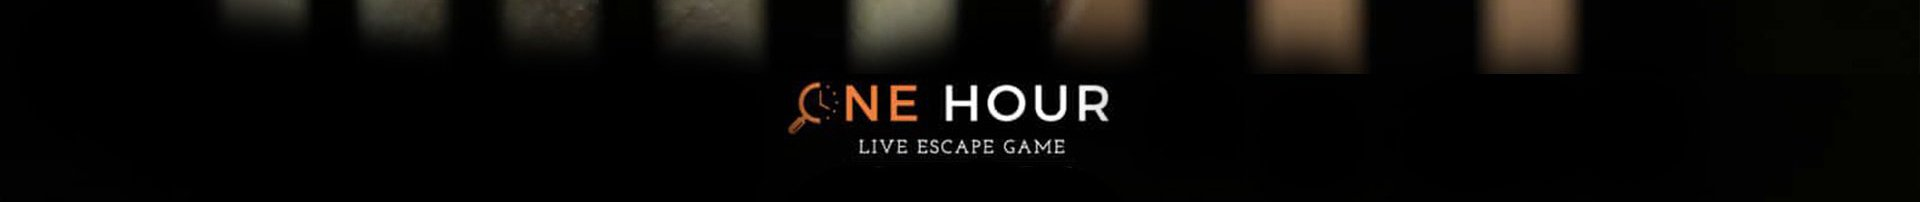 One hour - escape game horreur à Paris.jpg